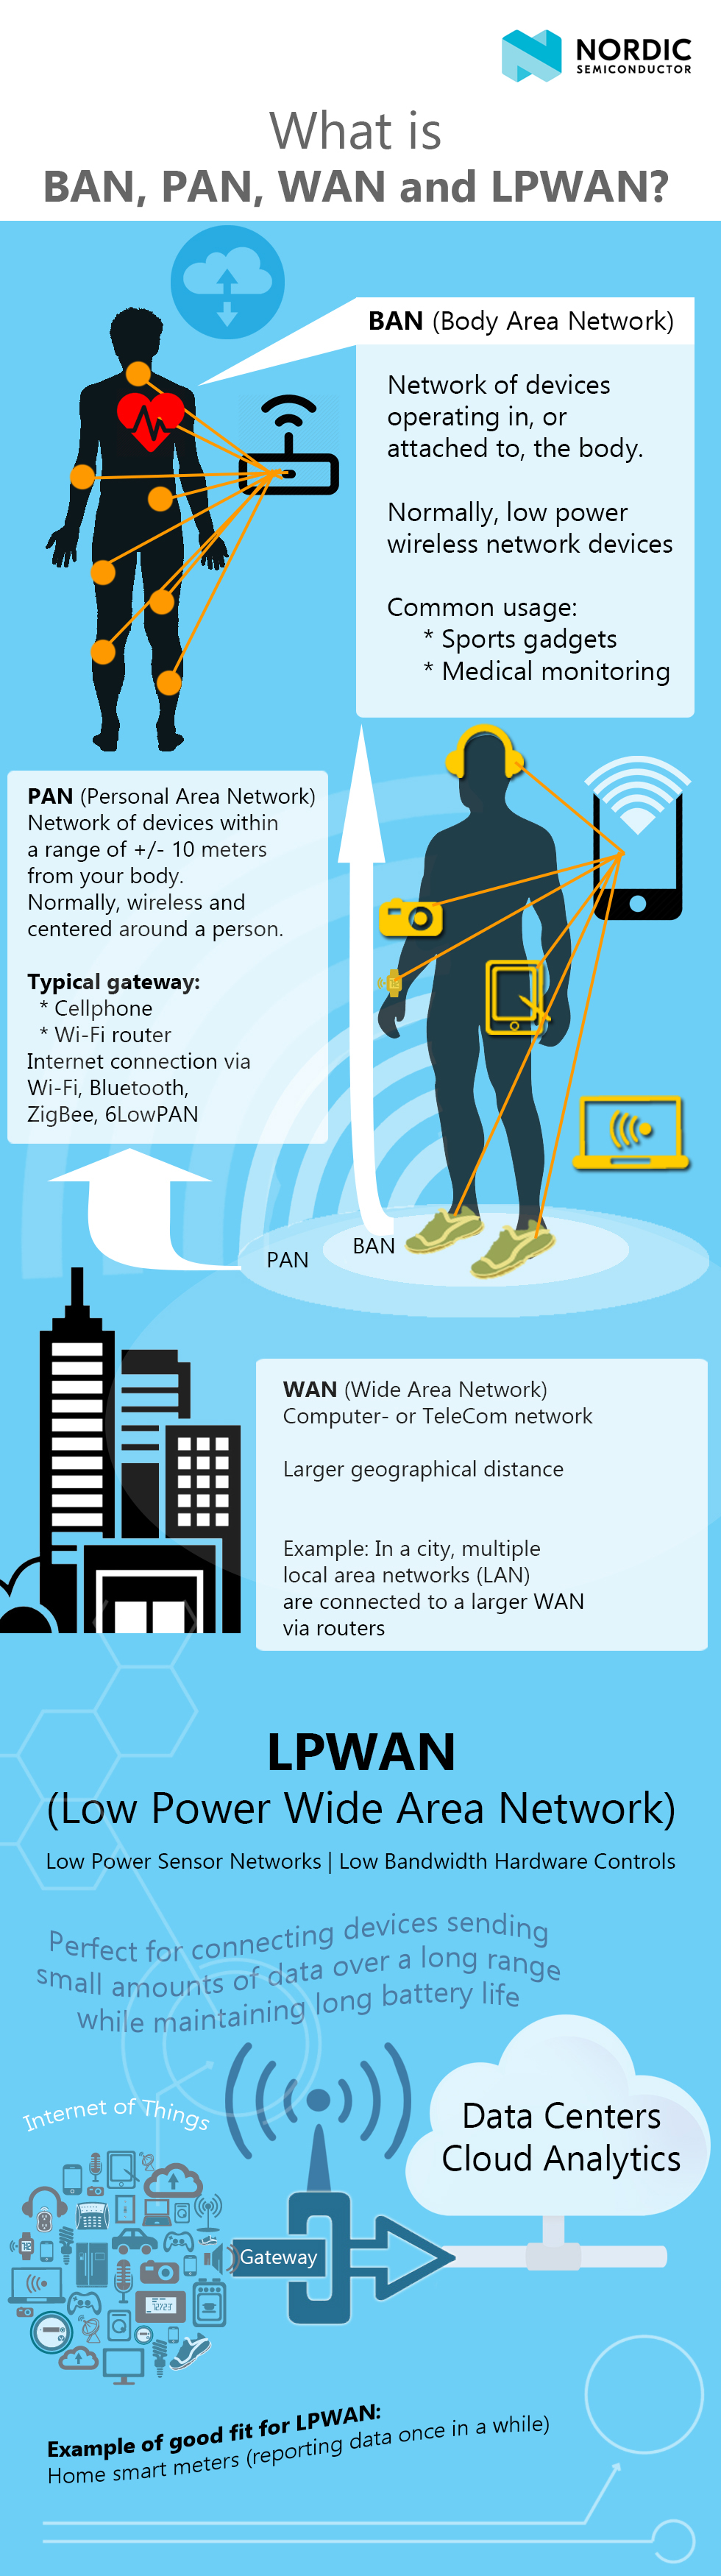 011-What-is-PAN,-BAN,-WAN-and-LPWAN-types-of-area-networks